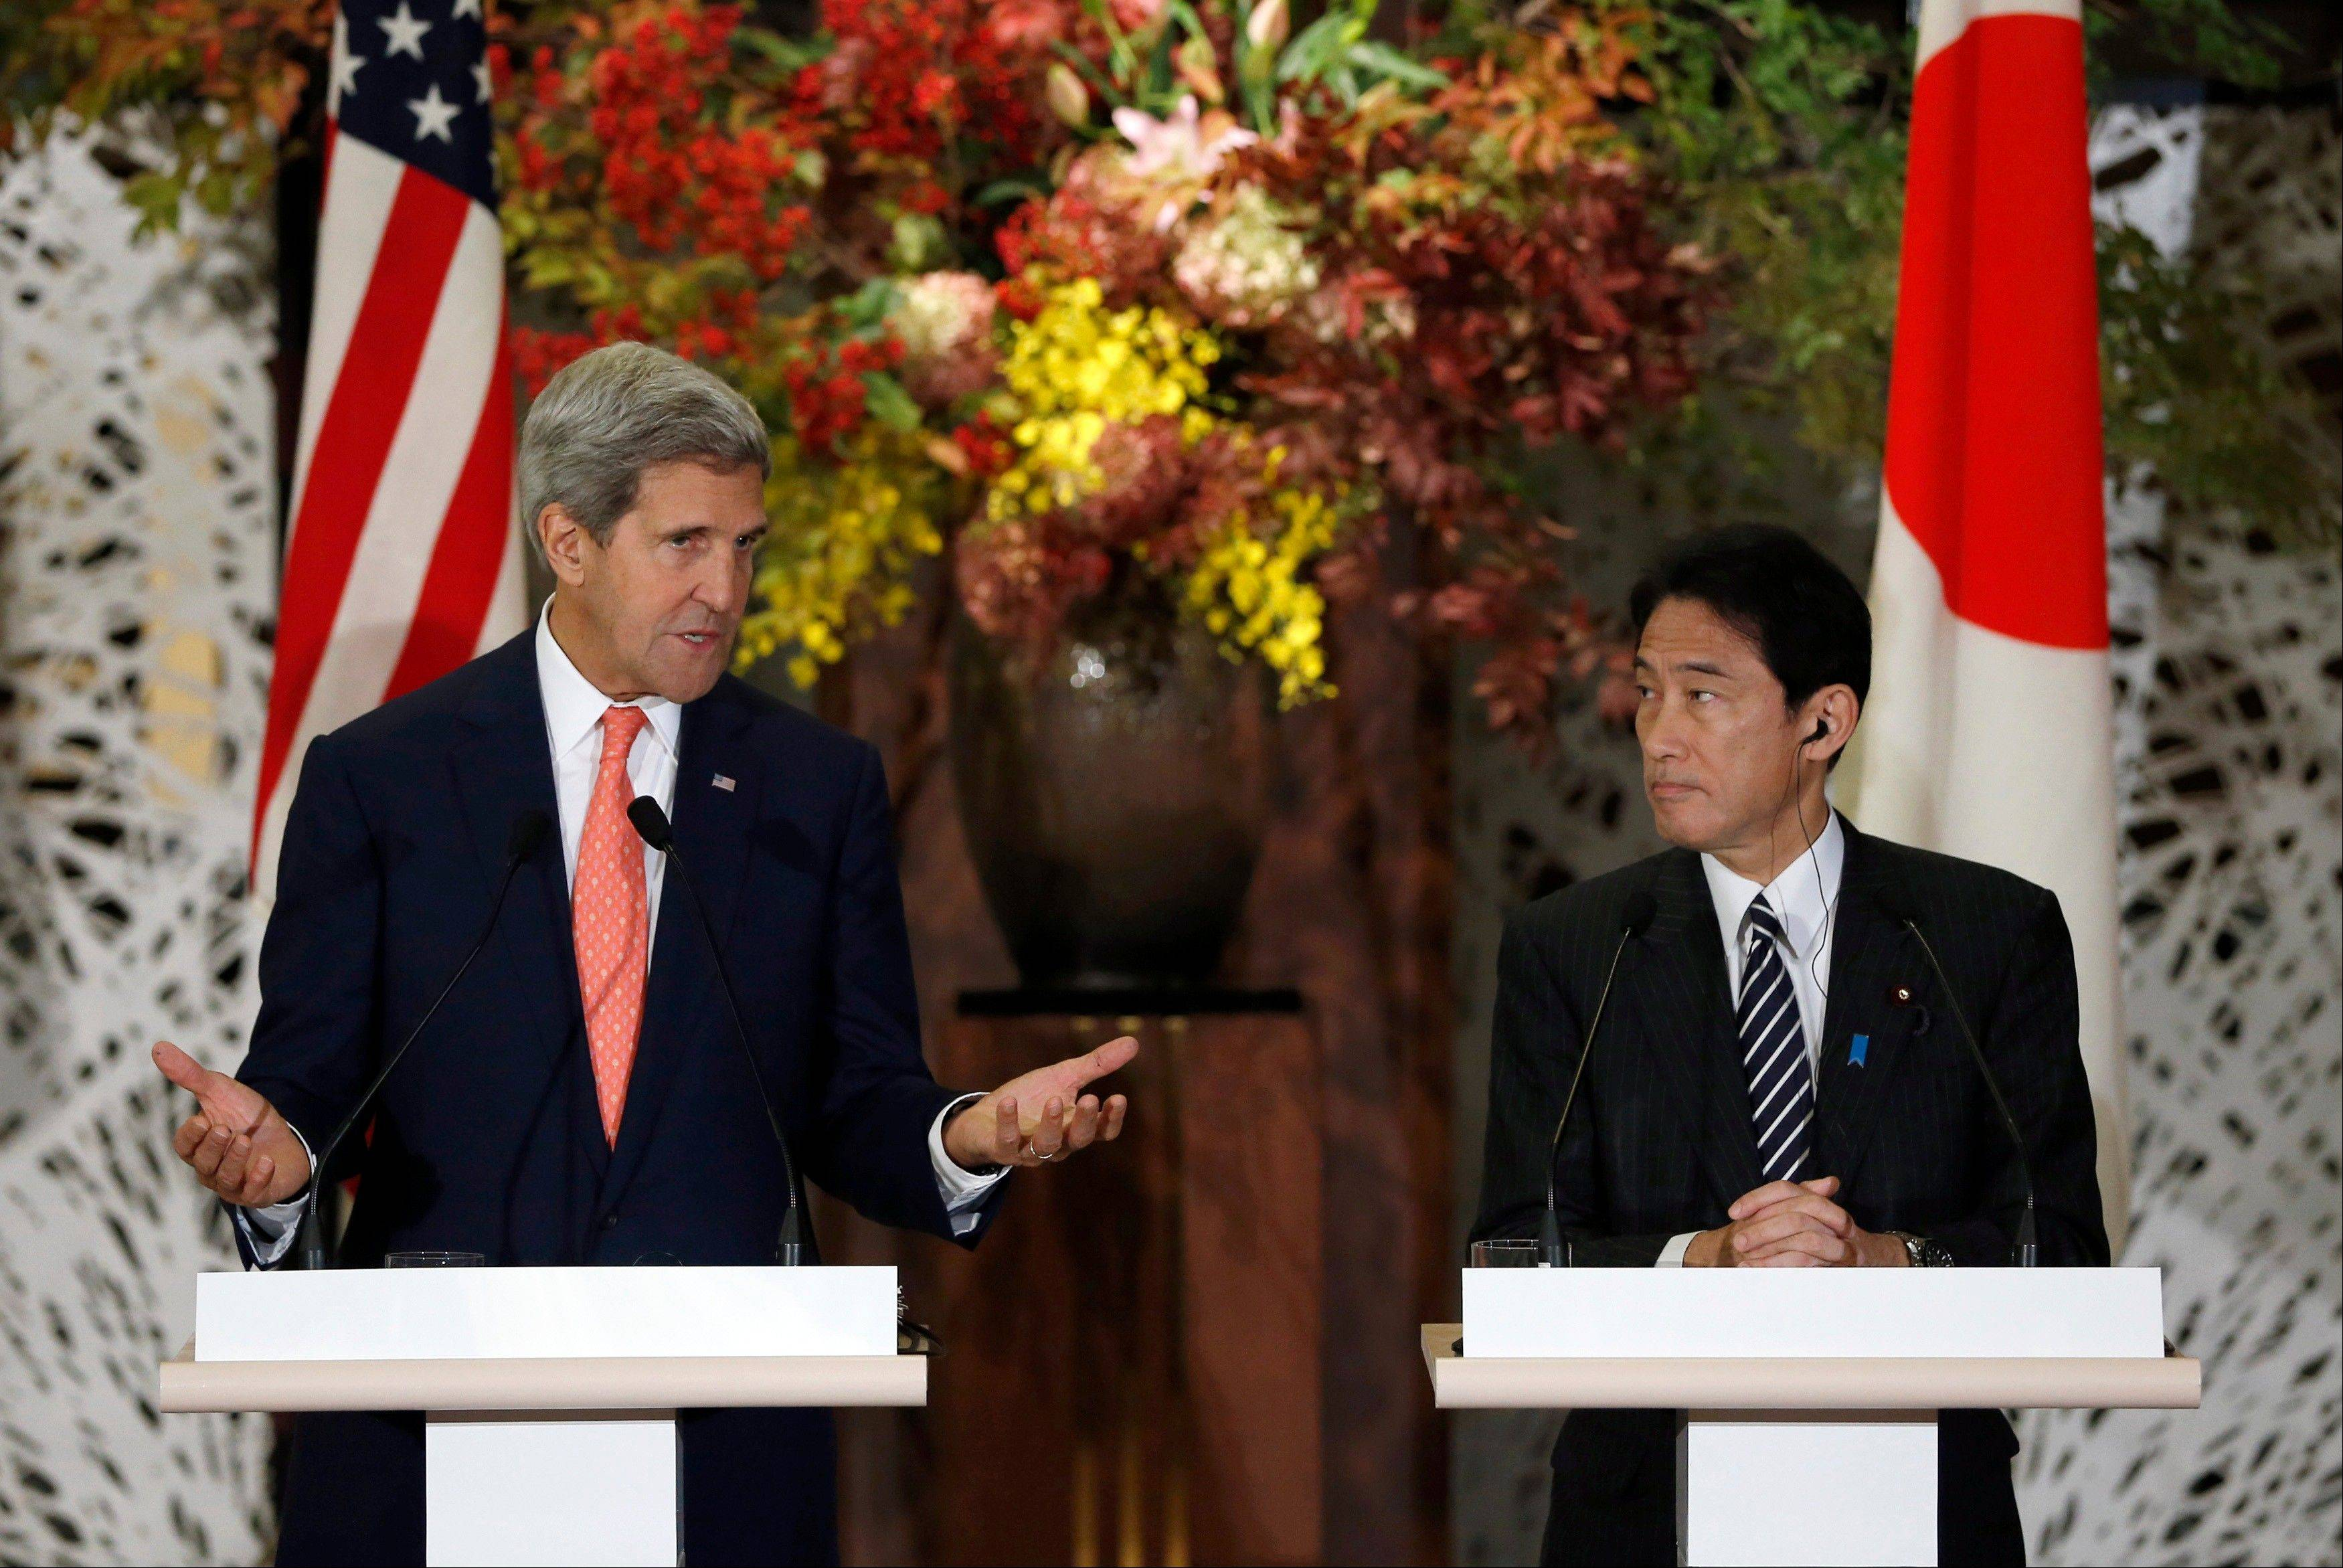 U.S. Secretary of State John Kerry, left, and Japan�s Foreign Minister Fumio Kishida, right, attend their joint news conference with U.S. Secretary of Defense Chuck Hagel and Japan�s Defense Minister Itsunori Onodera after the Japan-U.S. security talks in Tokyo Thursday, Oct. 3, 2013.